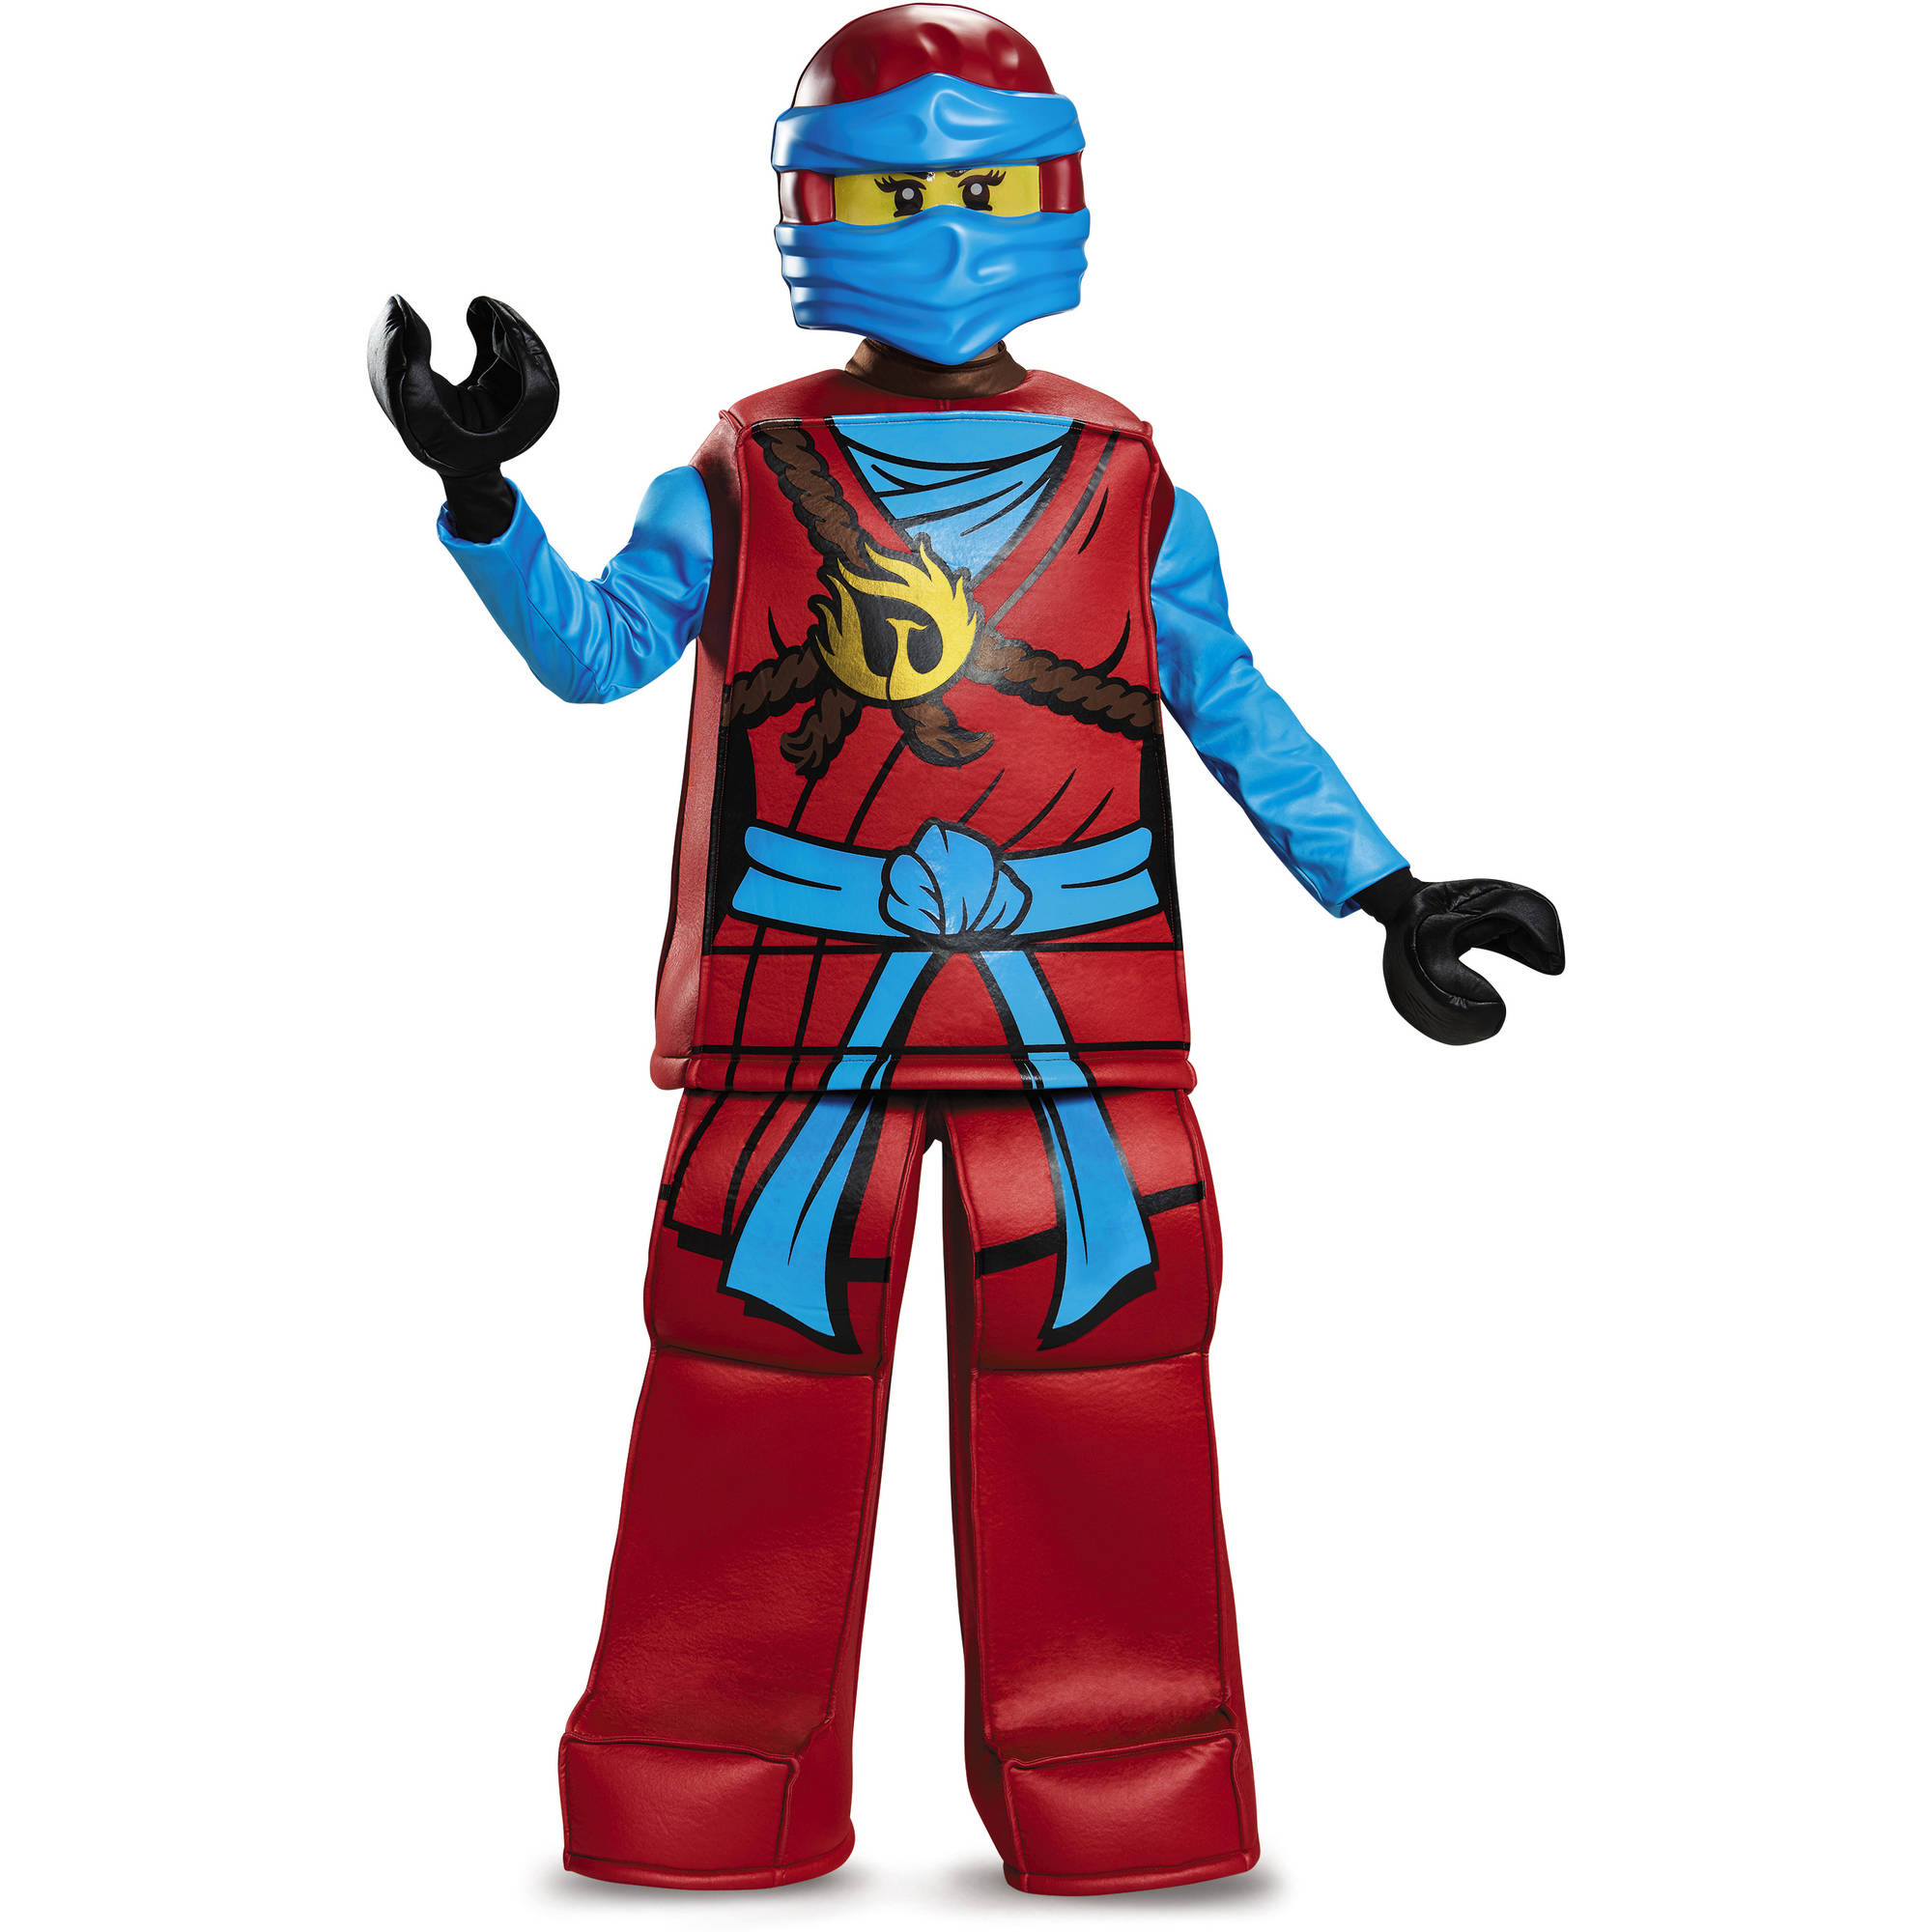 LEGO Ninjago Nya Child Prestige Halloween Costume